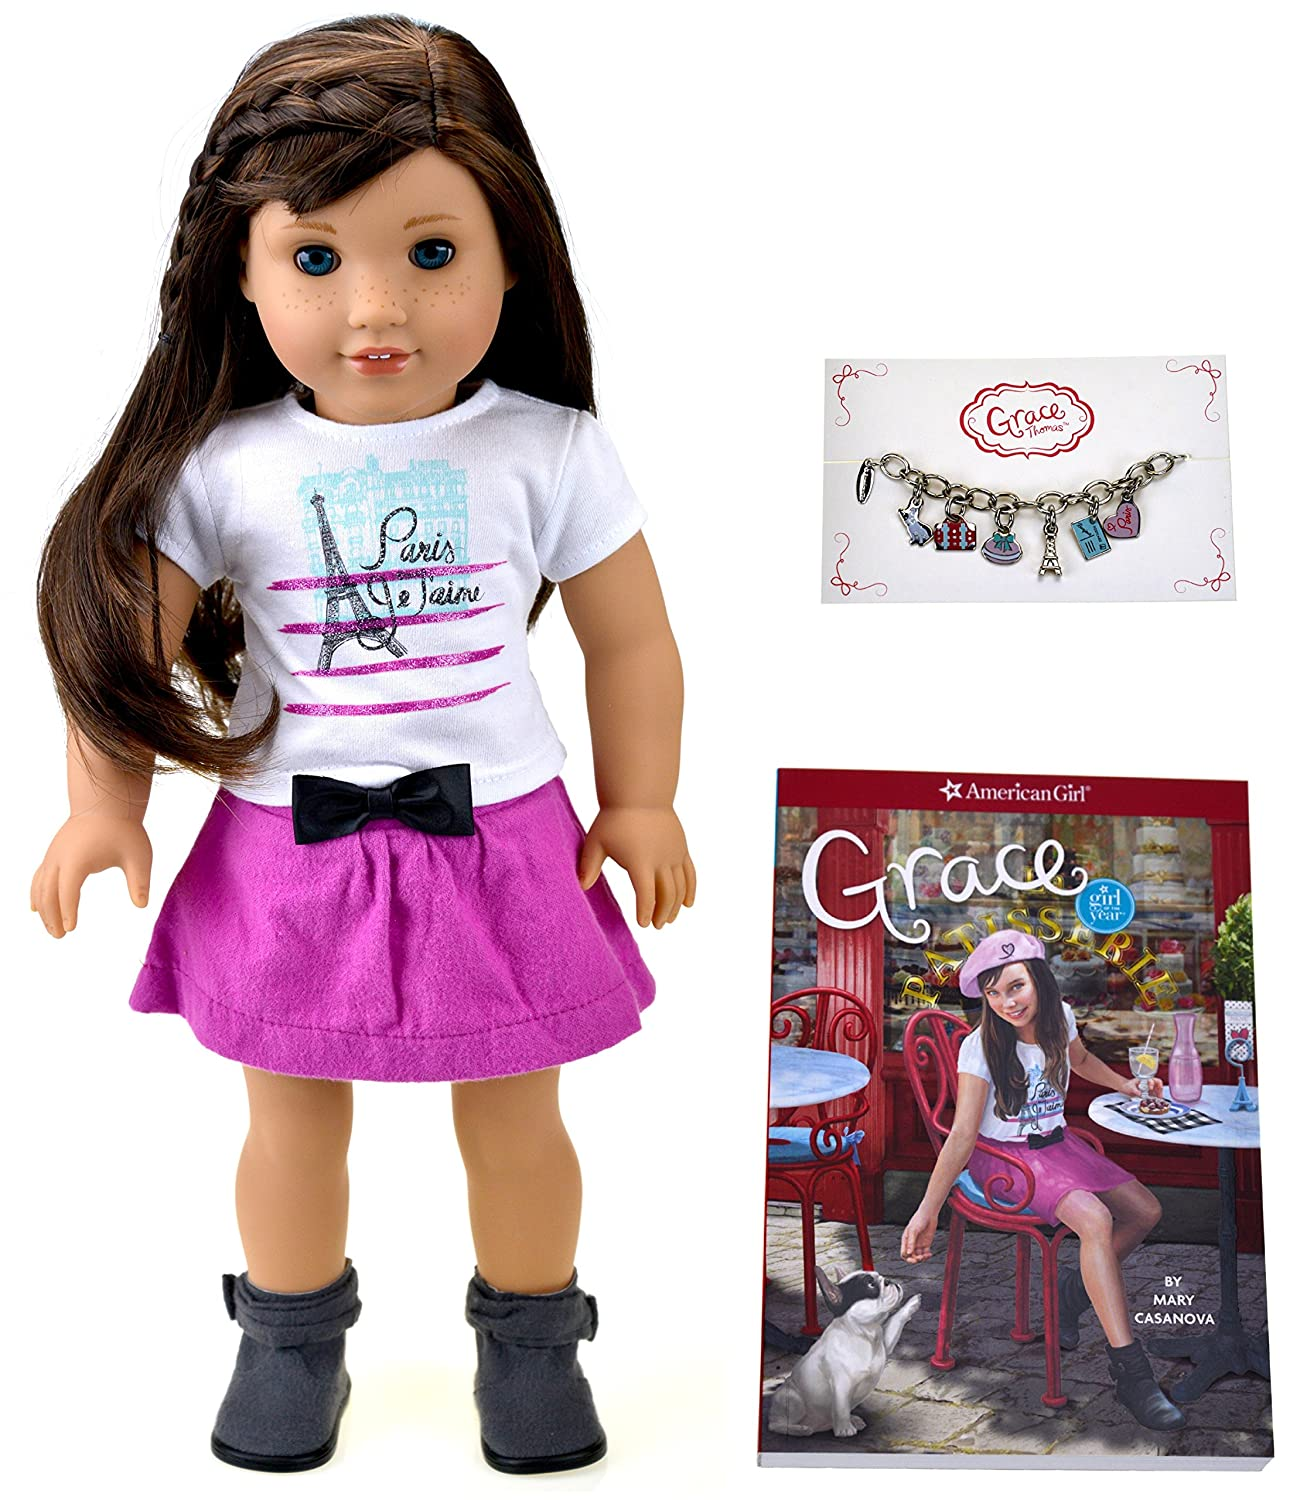 Amazon American Girl Grace Grace Doll and Paperback Book